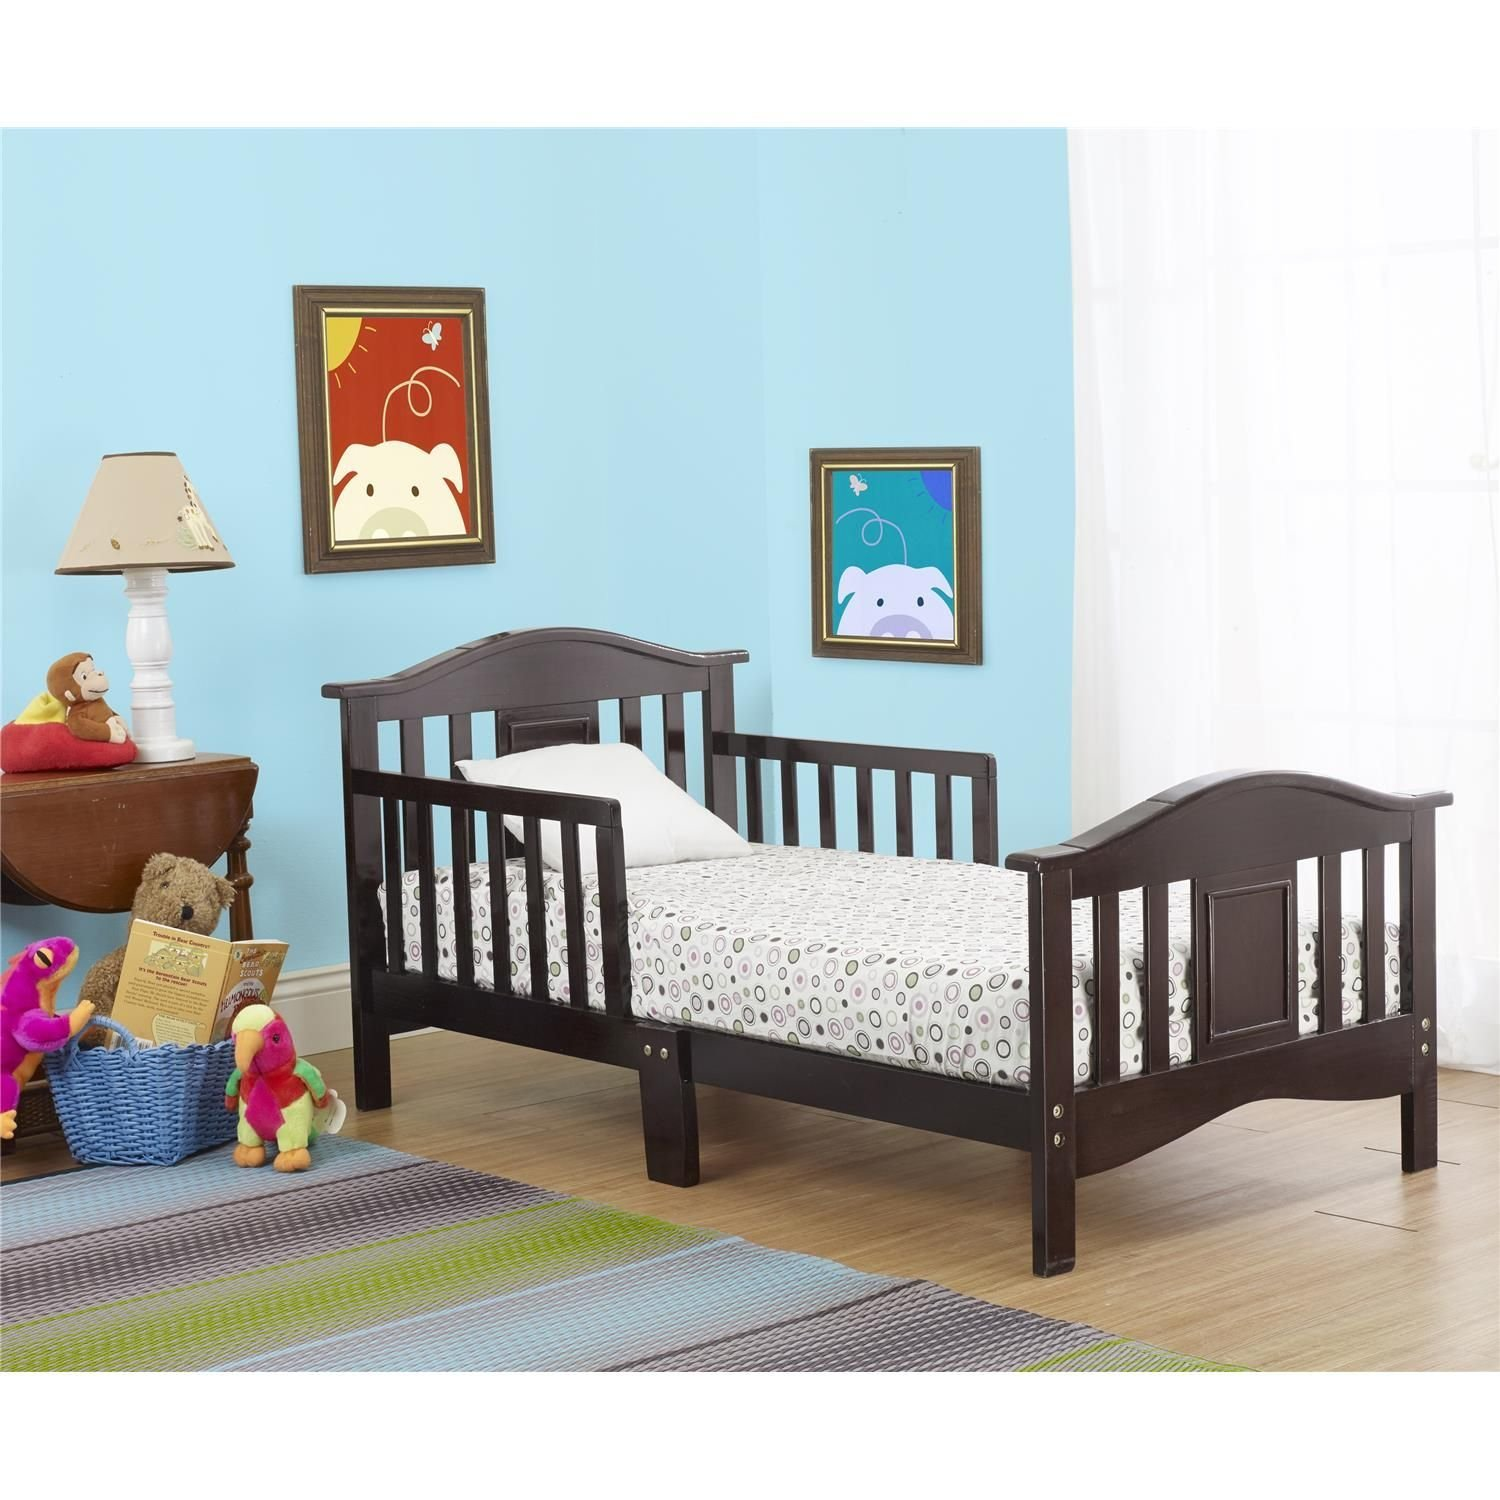 The Orbelle Contemporary Toddler Bed Espresso